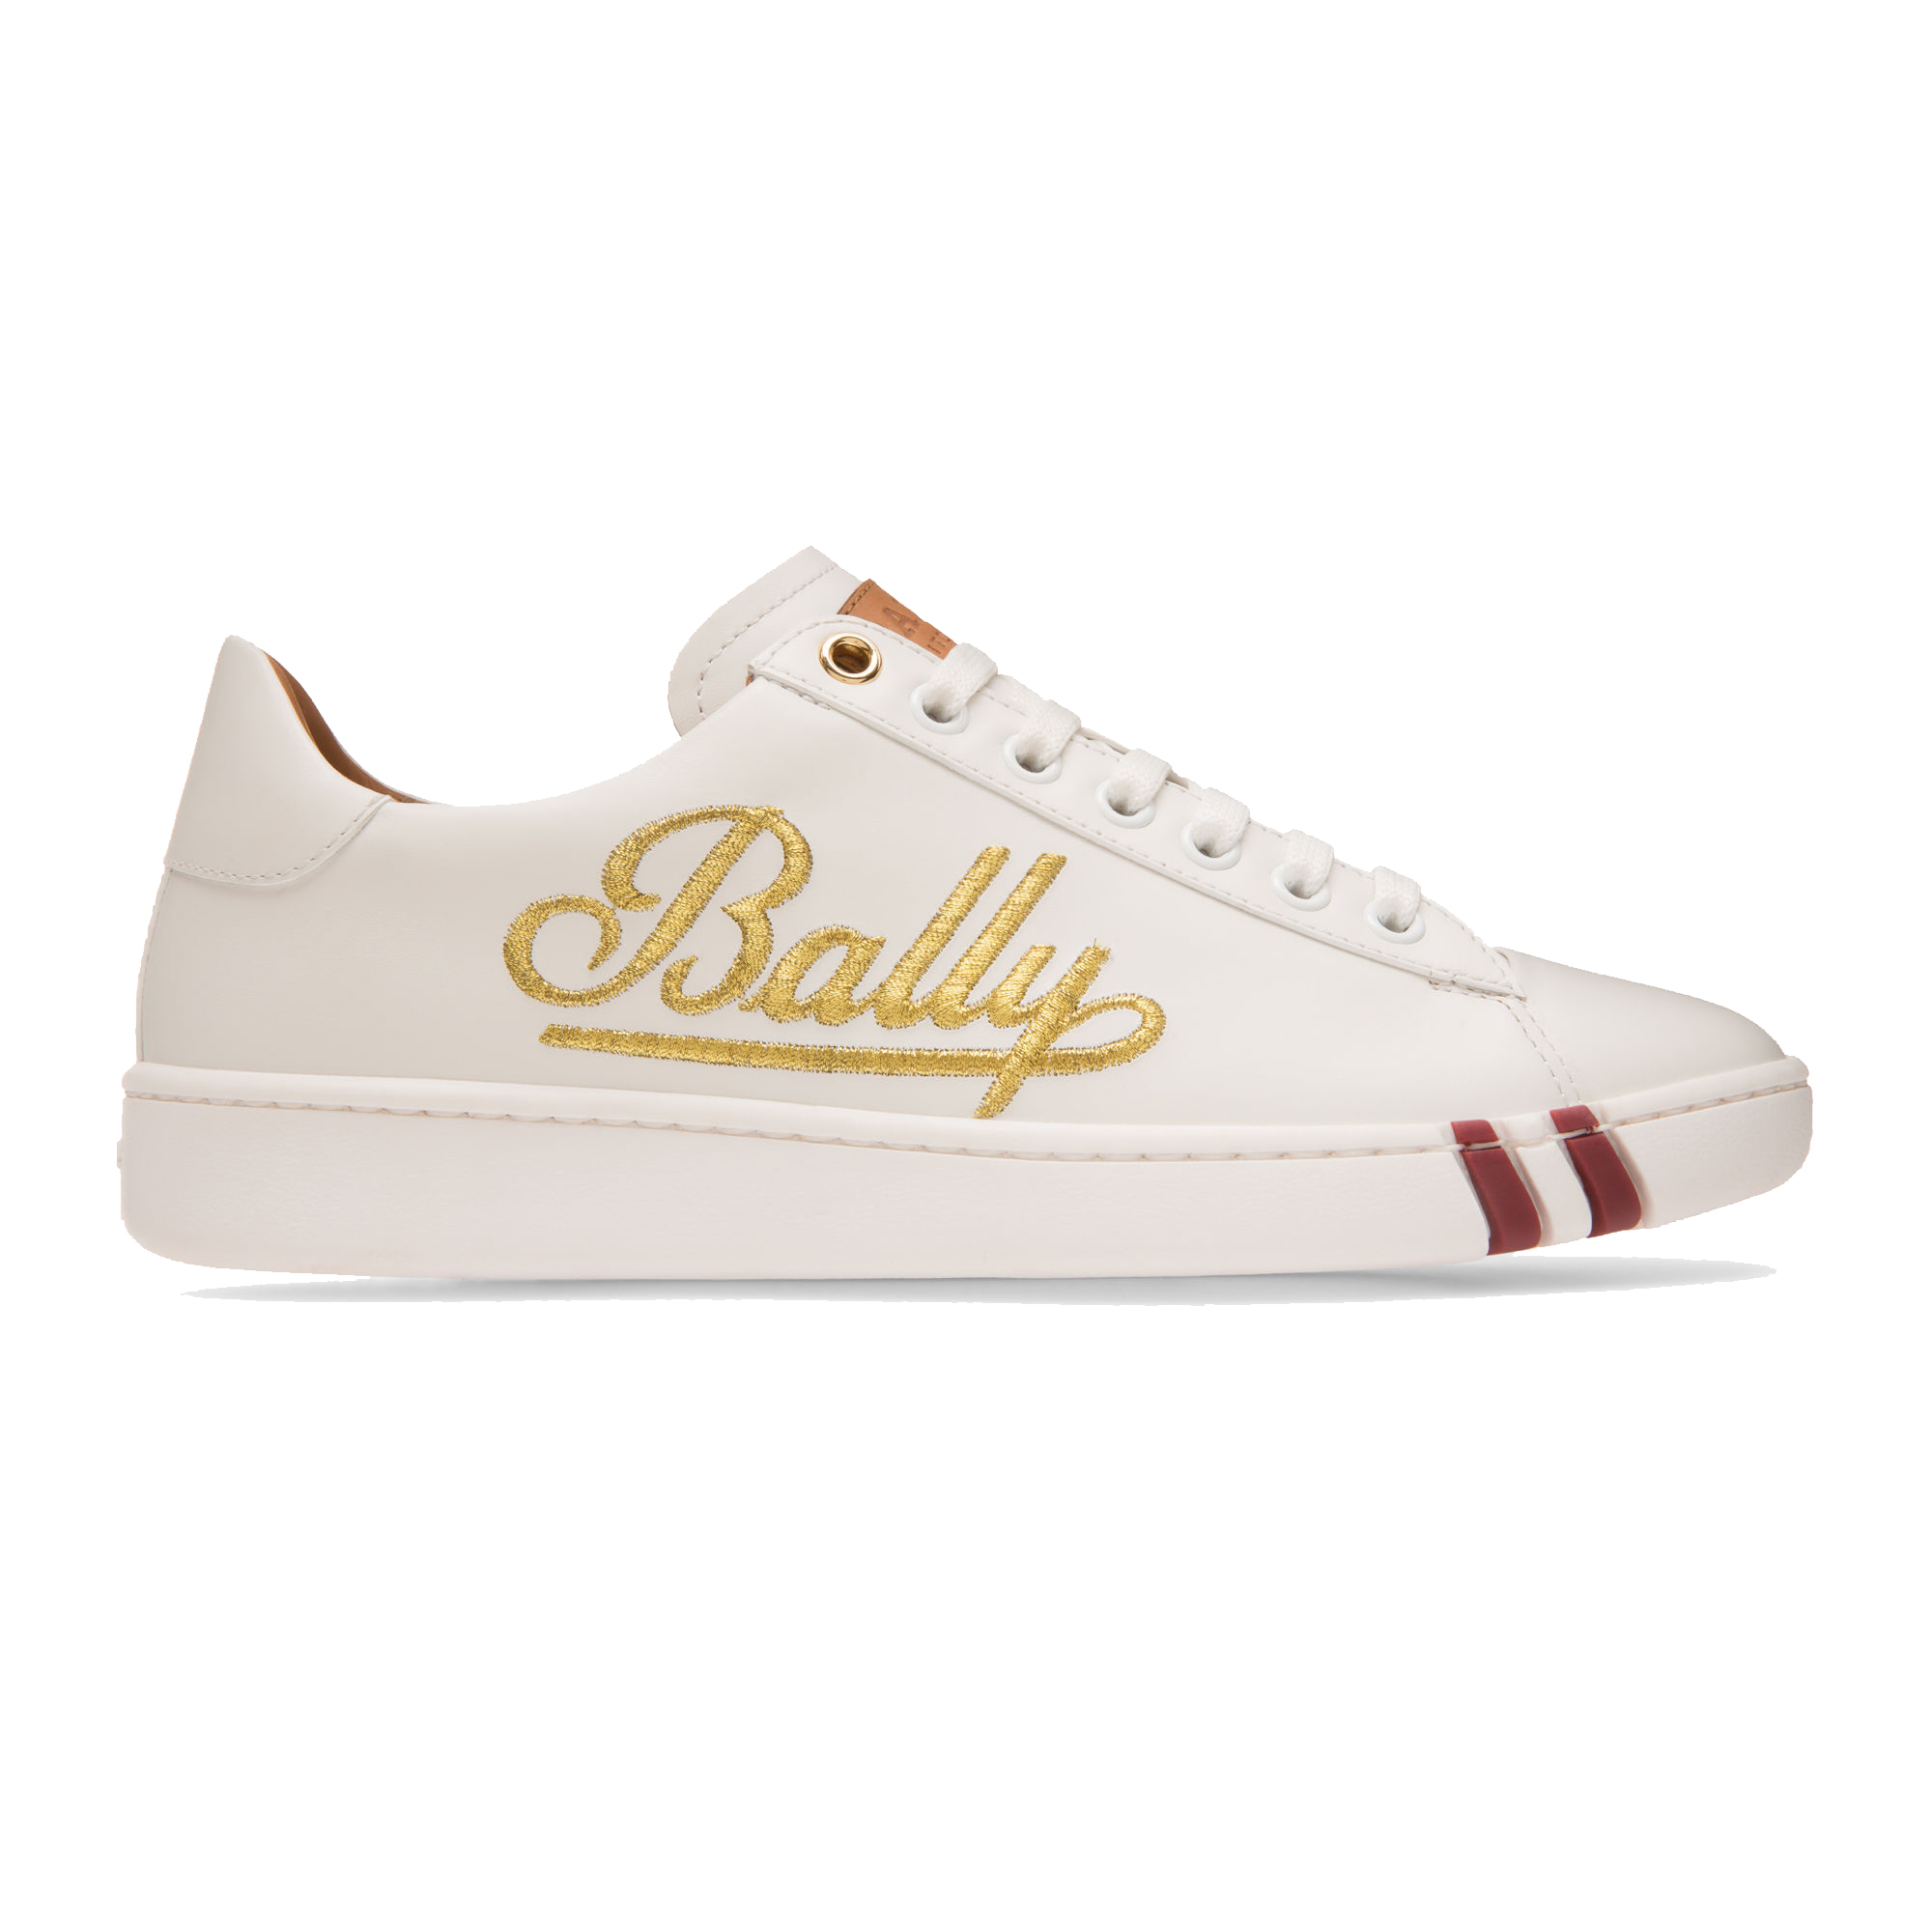 Bally Wiera Embroidered Trainers